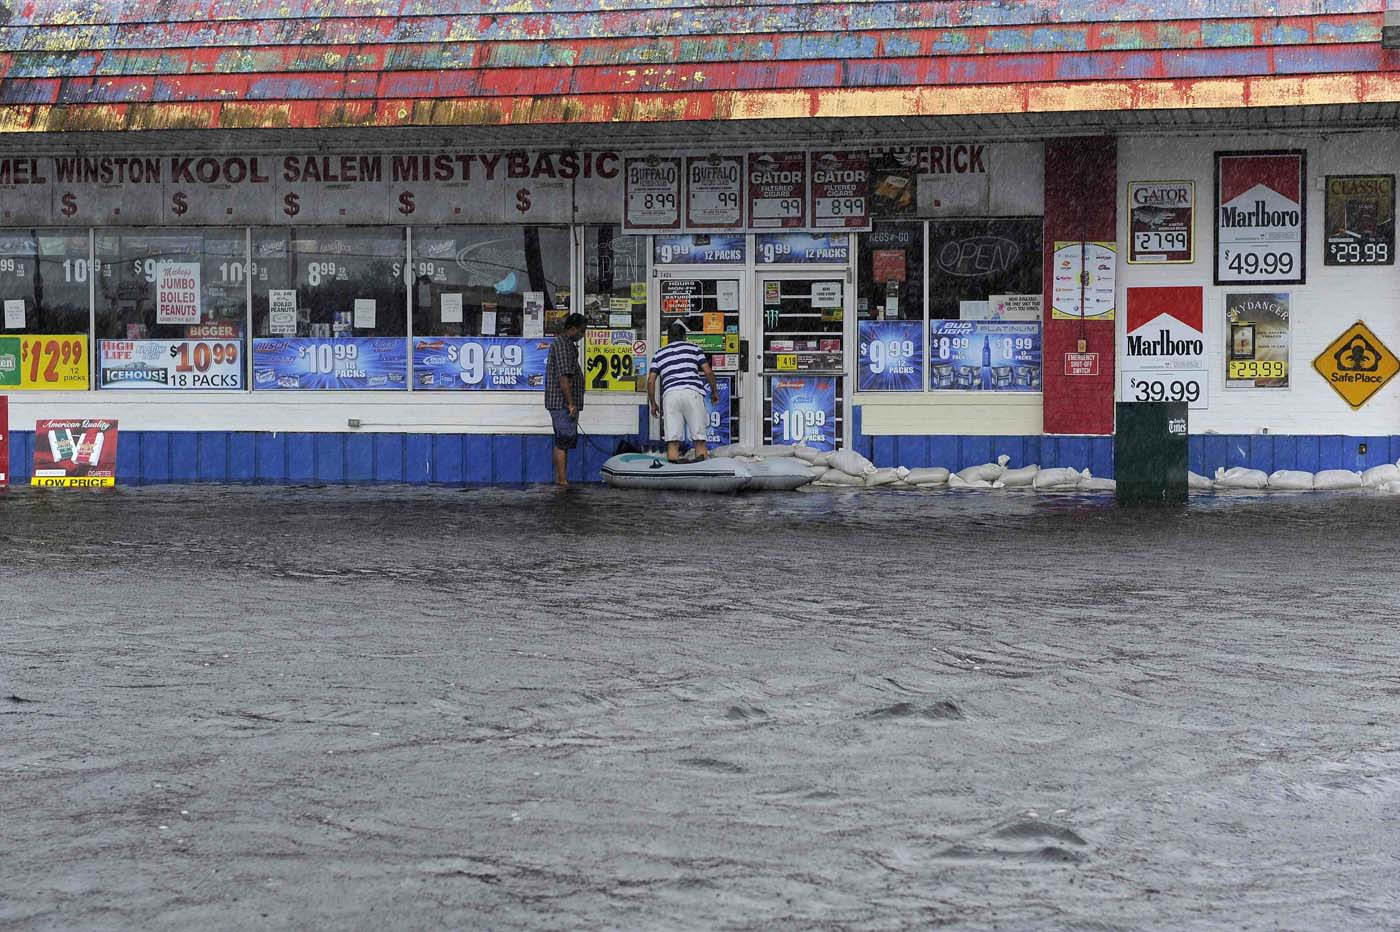 With the rain falling around them, business owners use a small boat to check on the status of the water inside their store as floodwater associated with Tropical Storm Debby rises in New Port Richey, Florida, June 26, 2012. (Brian Blanco/Reuters)